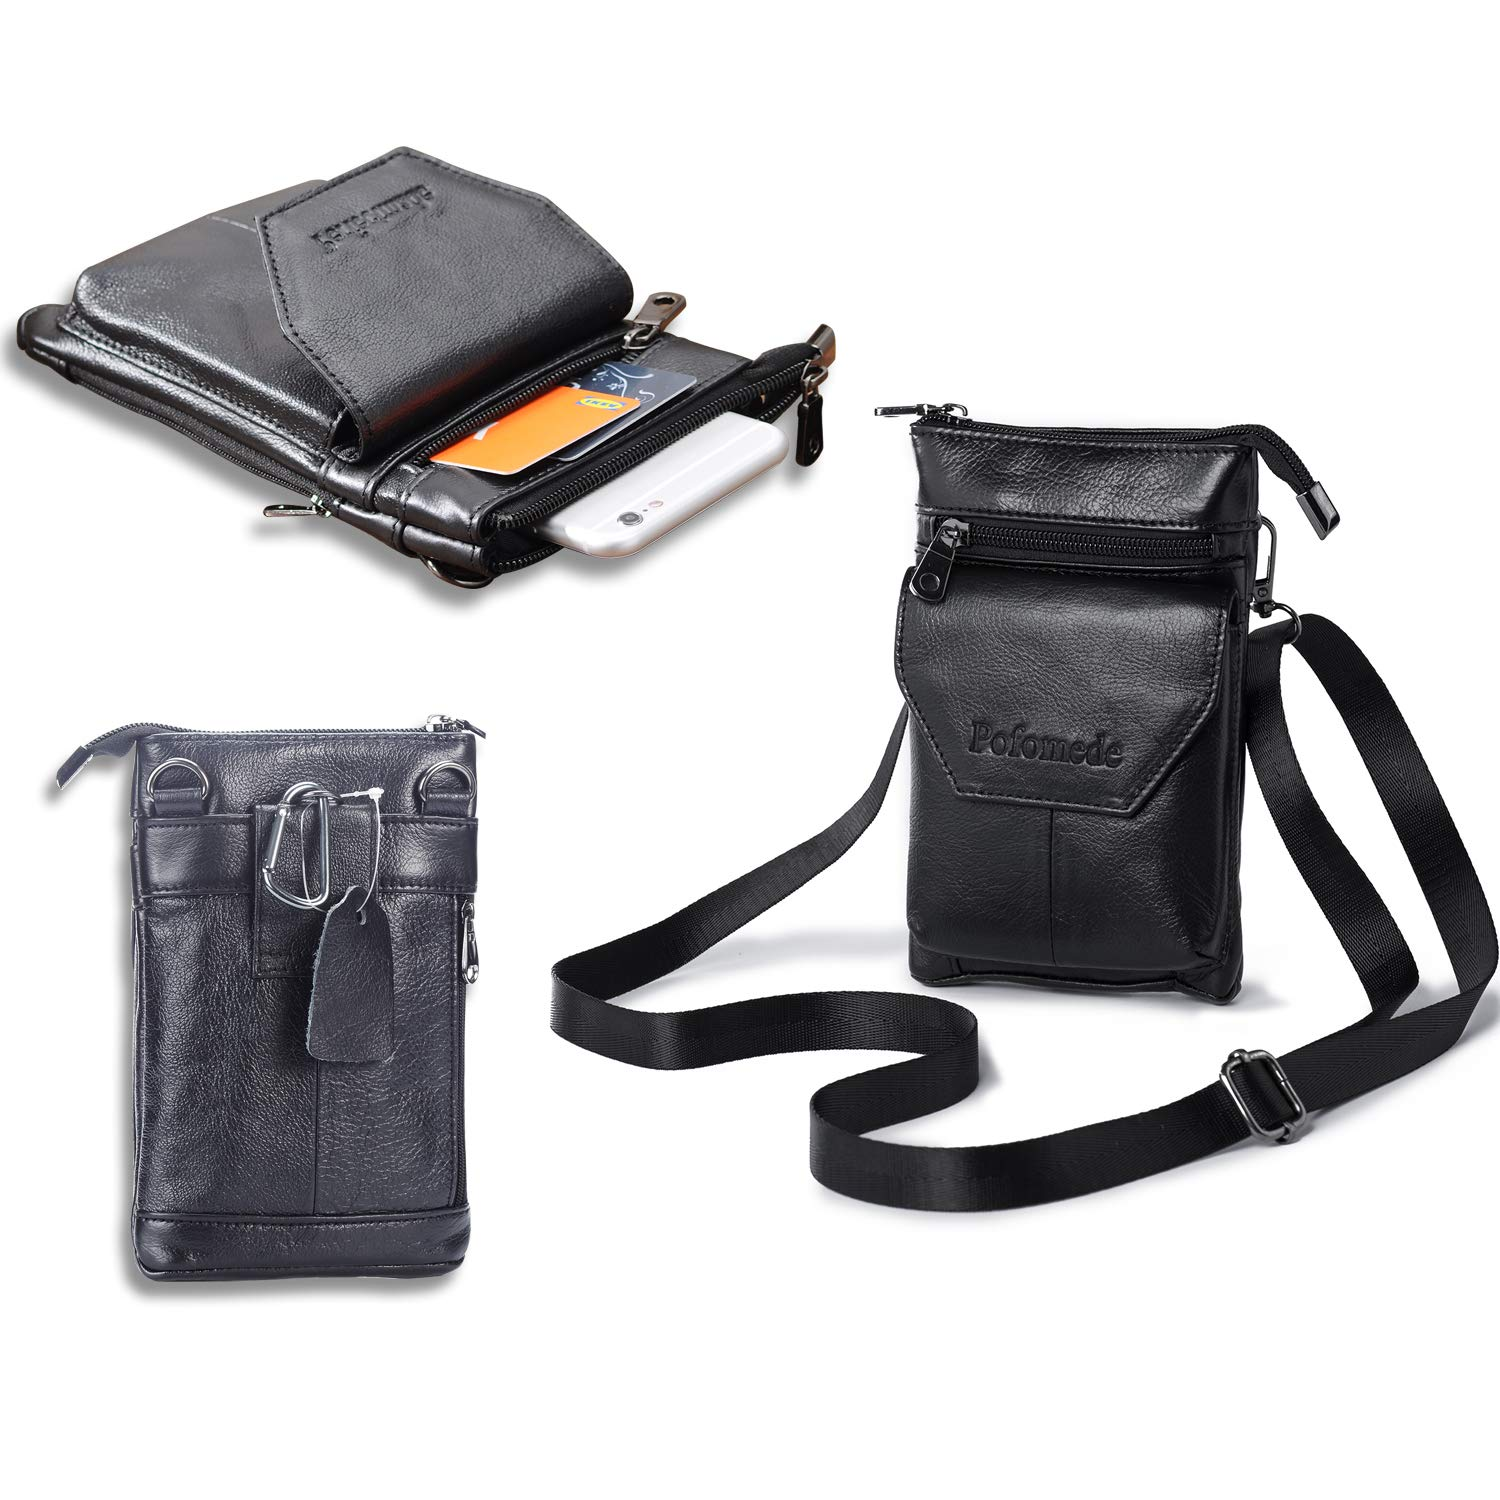 Pofomede Genuine Leather Belt Pouch Case with Belt Clip for iPhone 11 Pro Max, iPhone Xs Max 7 Plus 8 Plus 6s Plus, Small Crossbody Purse Bag Waist Cell Phone Holder(Black)